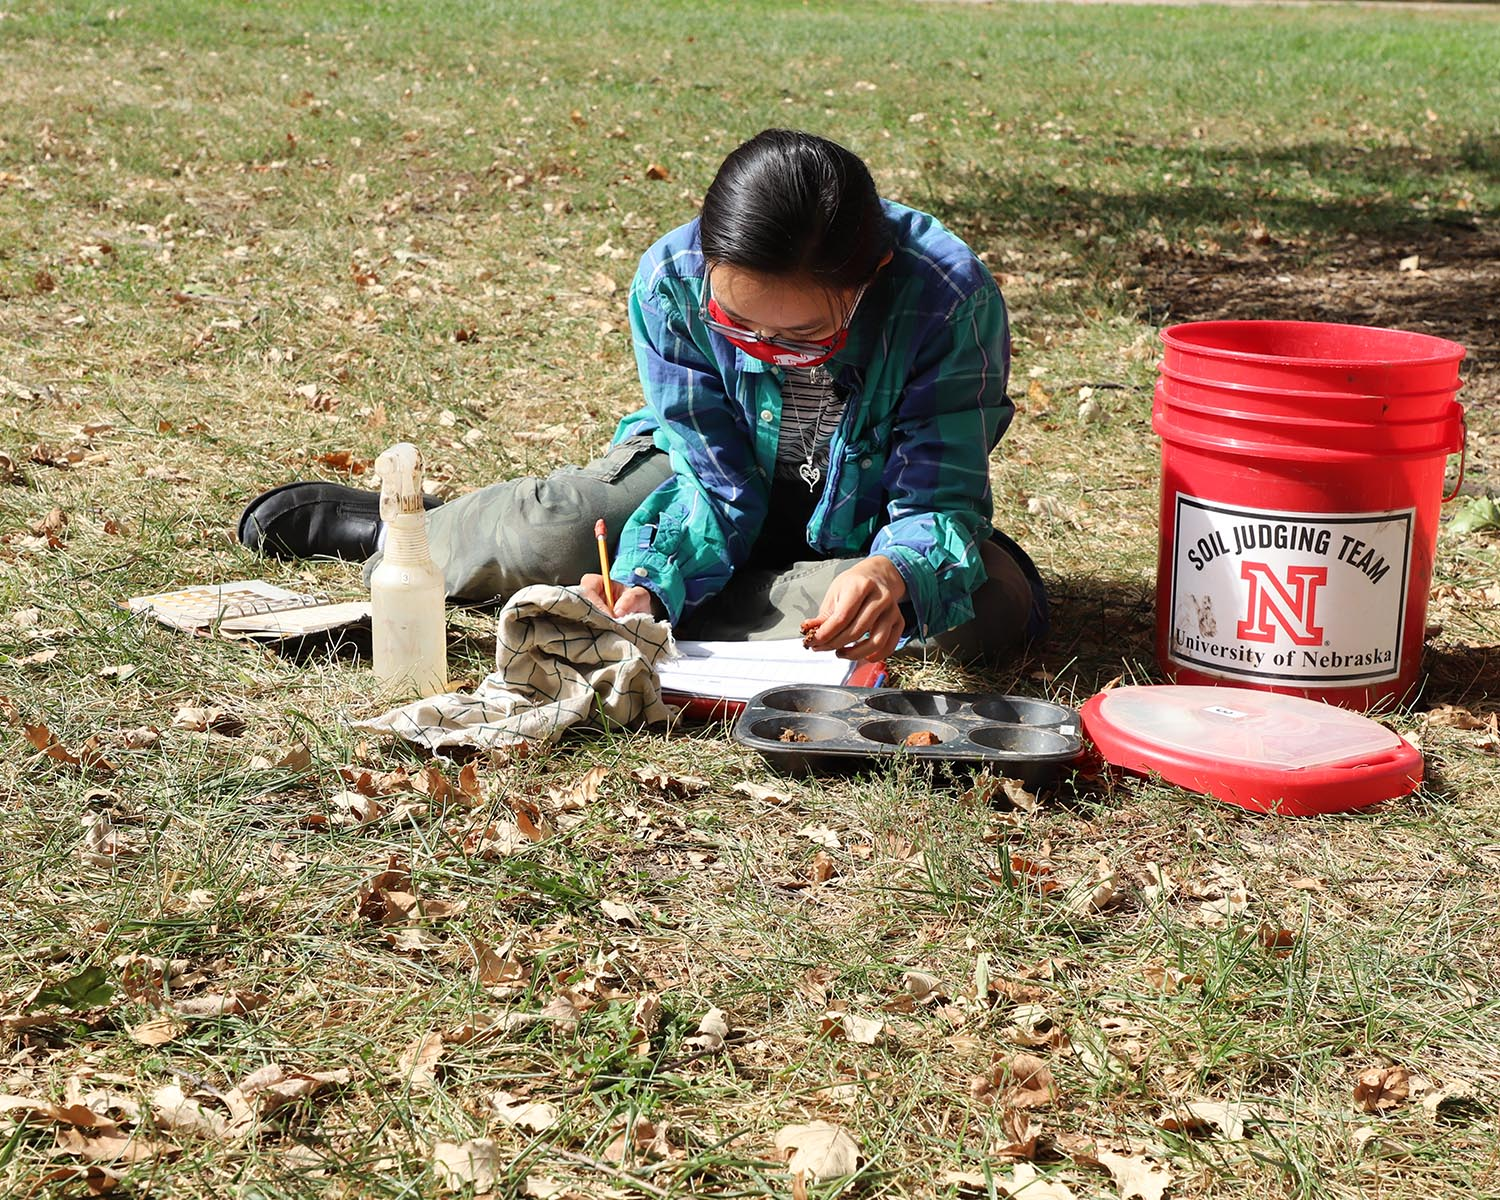 Phuong Minh Tu Le makes notes about her soil texture and soil color determinations during an Oct. 2 practice session in advance of the Region 5 Soil Judging Competition. The competition is being held virtually this year. Lana Koepke Johnson, UNL Agronomy